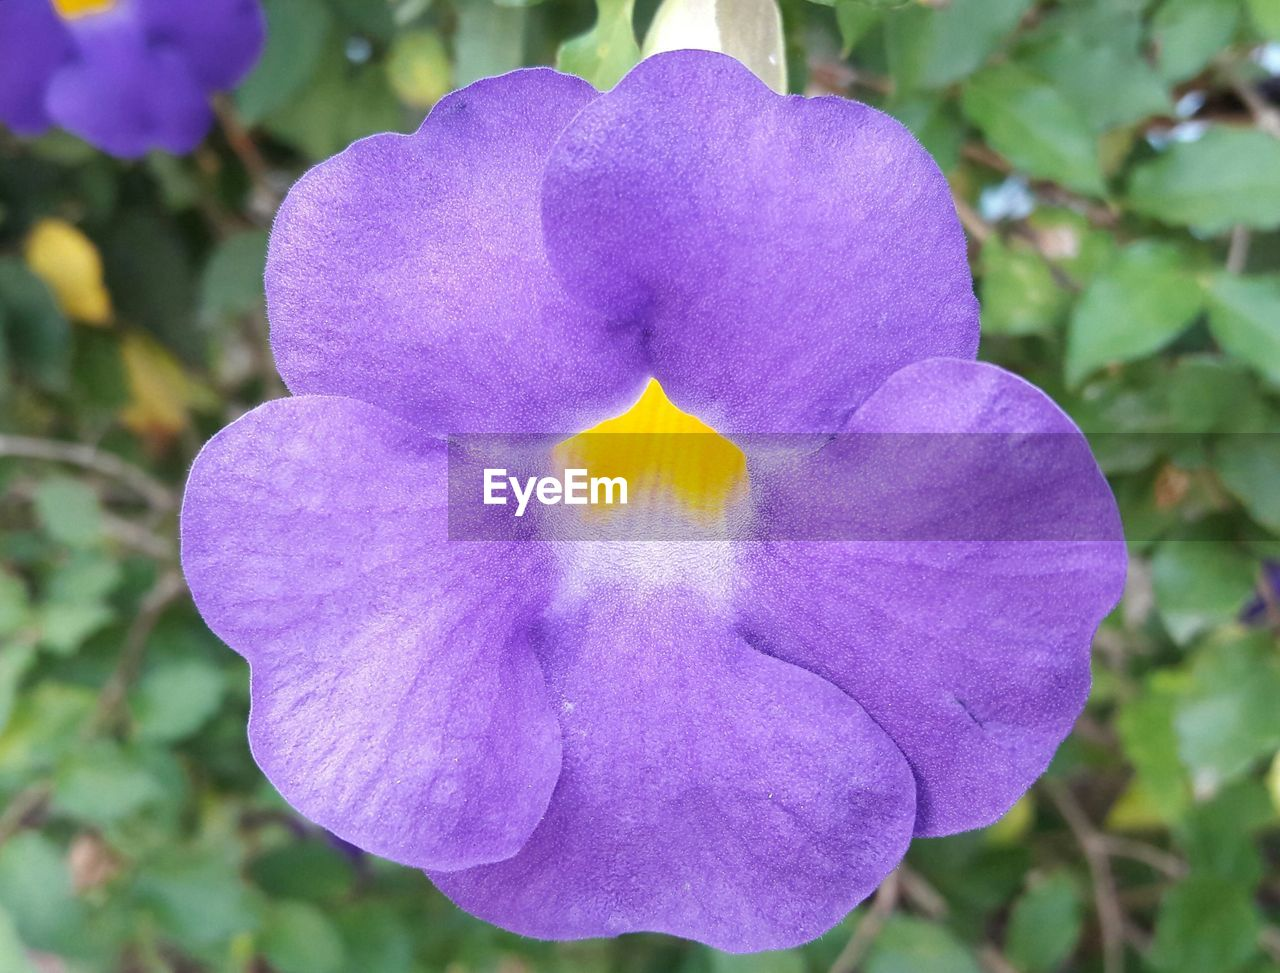 flower, petal, beauty in nature, nature, purple, fragility, plant, focus on foreground, no people, day, growth, close-up, outdoors, flower head, blooming, freshness, petunia